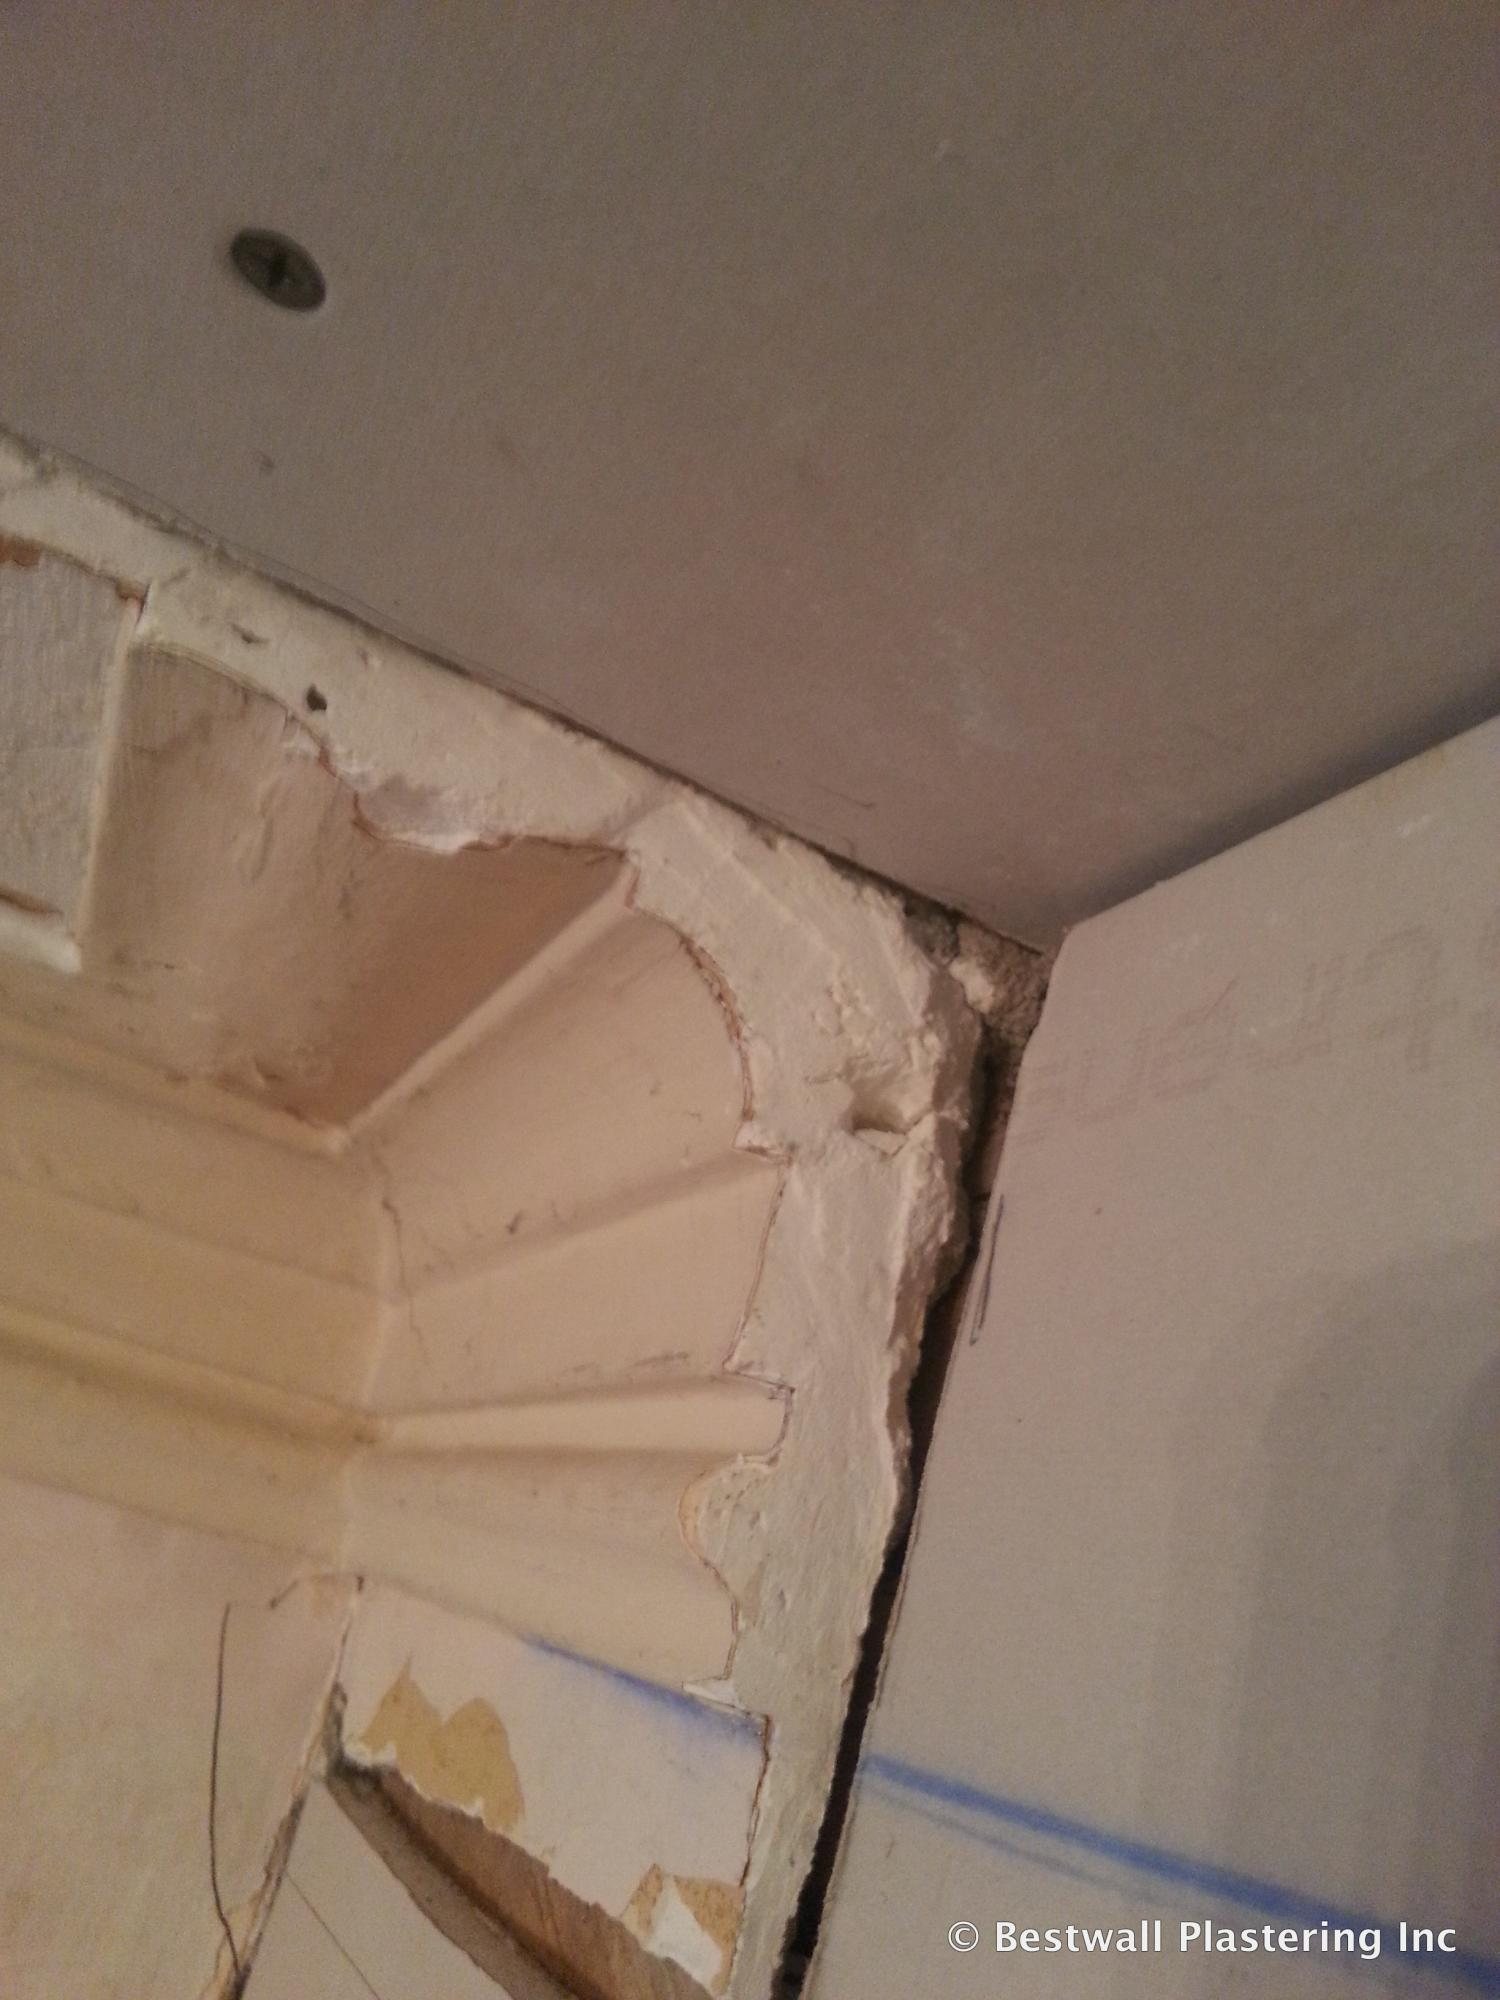 easy repair and plaster exact fullsizerender our wall ceiling extract step